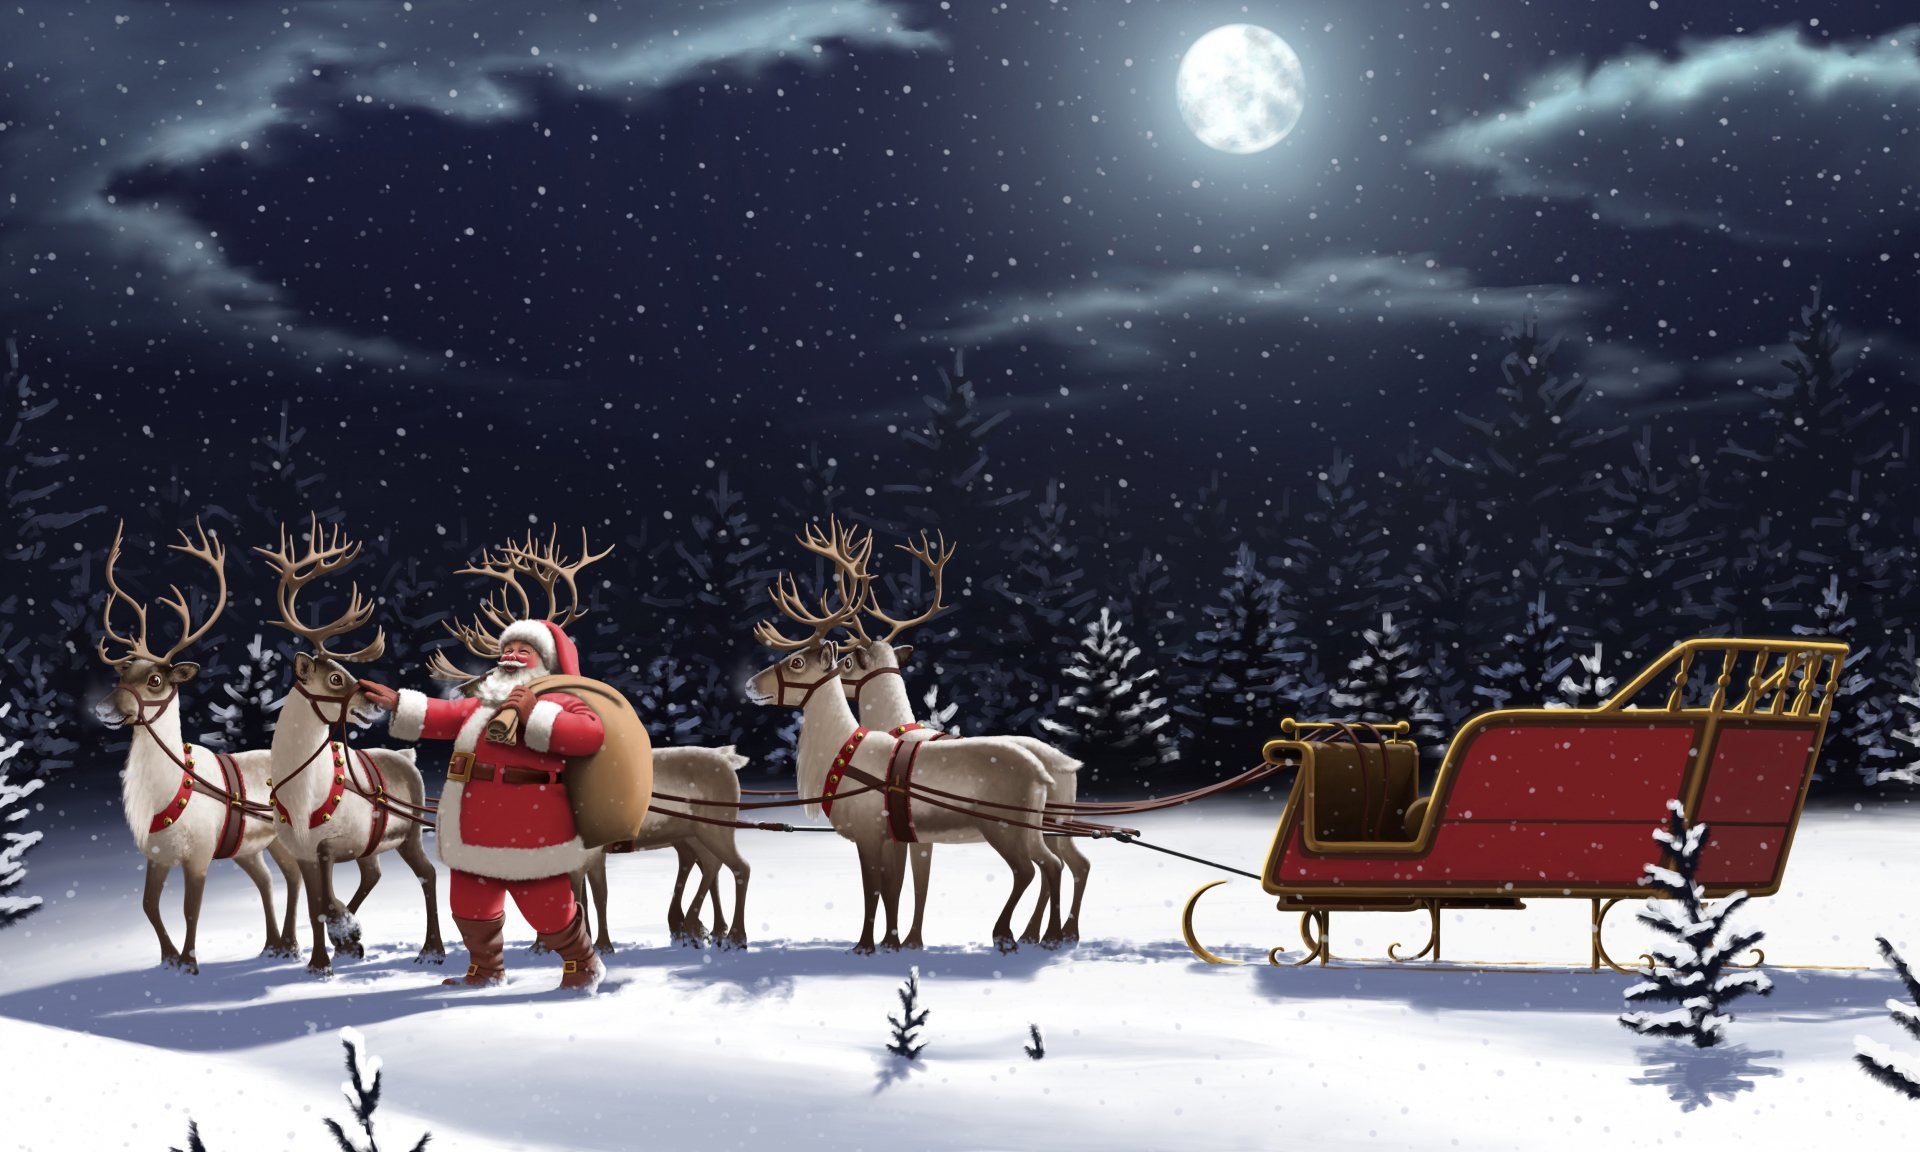 Holiday - Christmas  Night Sleigh Reindeer Santa Snowfall Moon Wallpaper